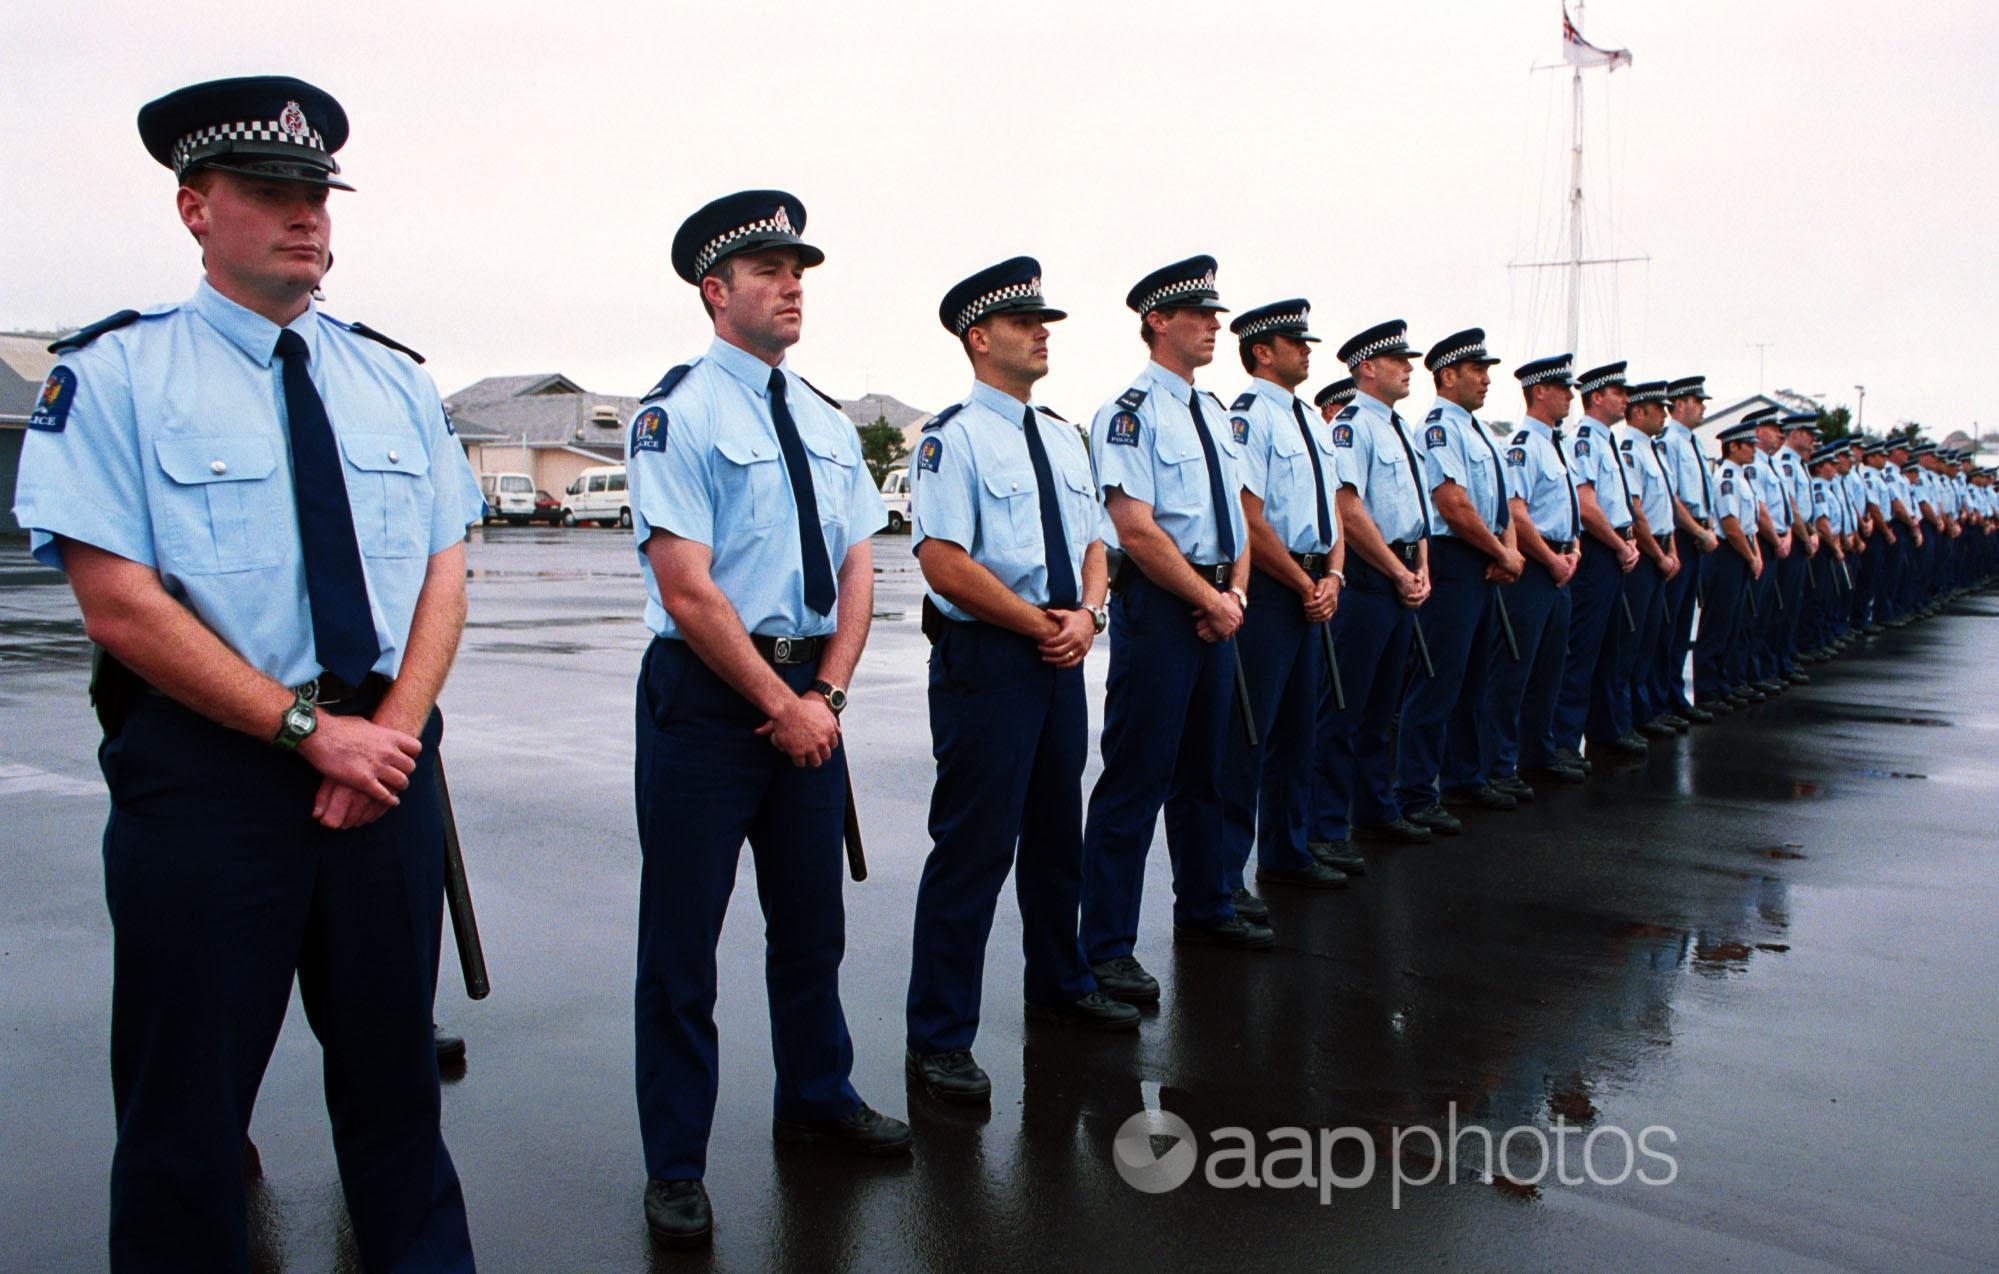 A line of NZ Police in uniform